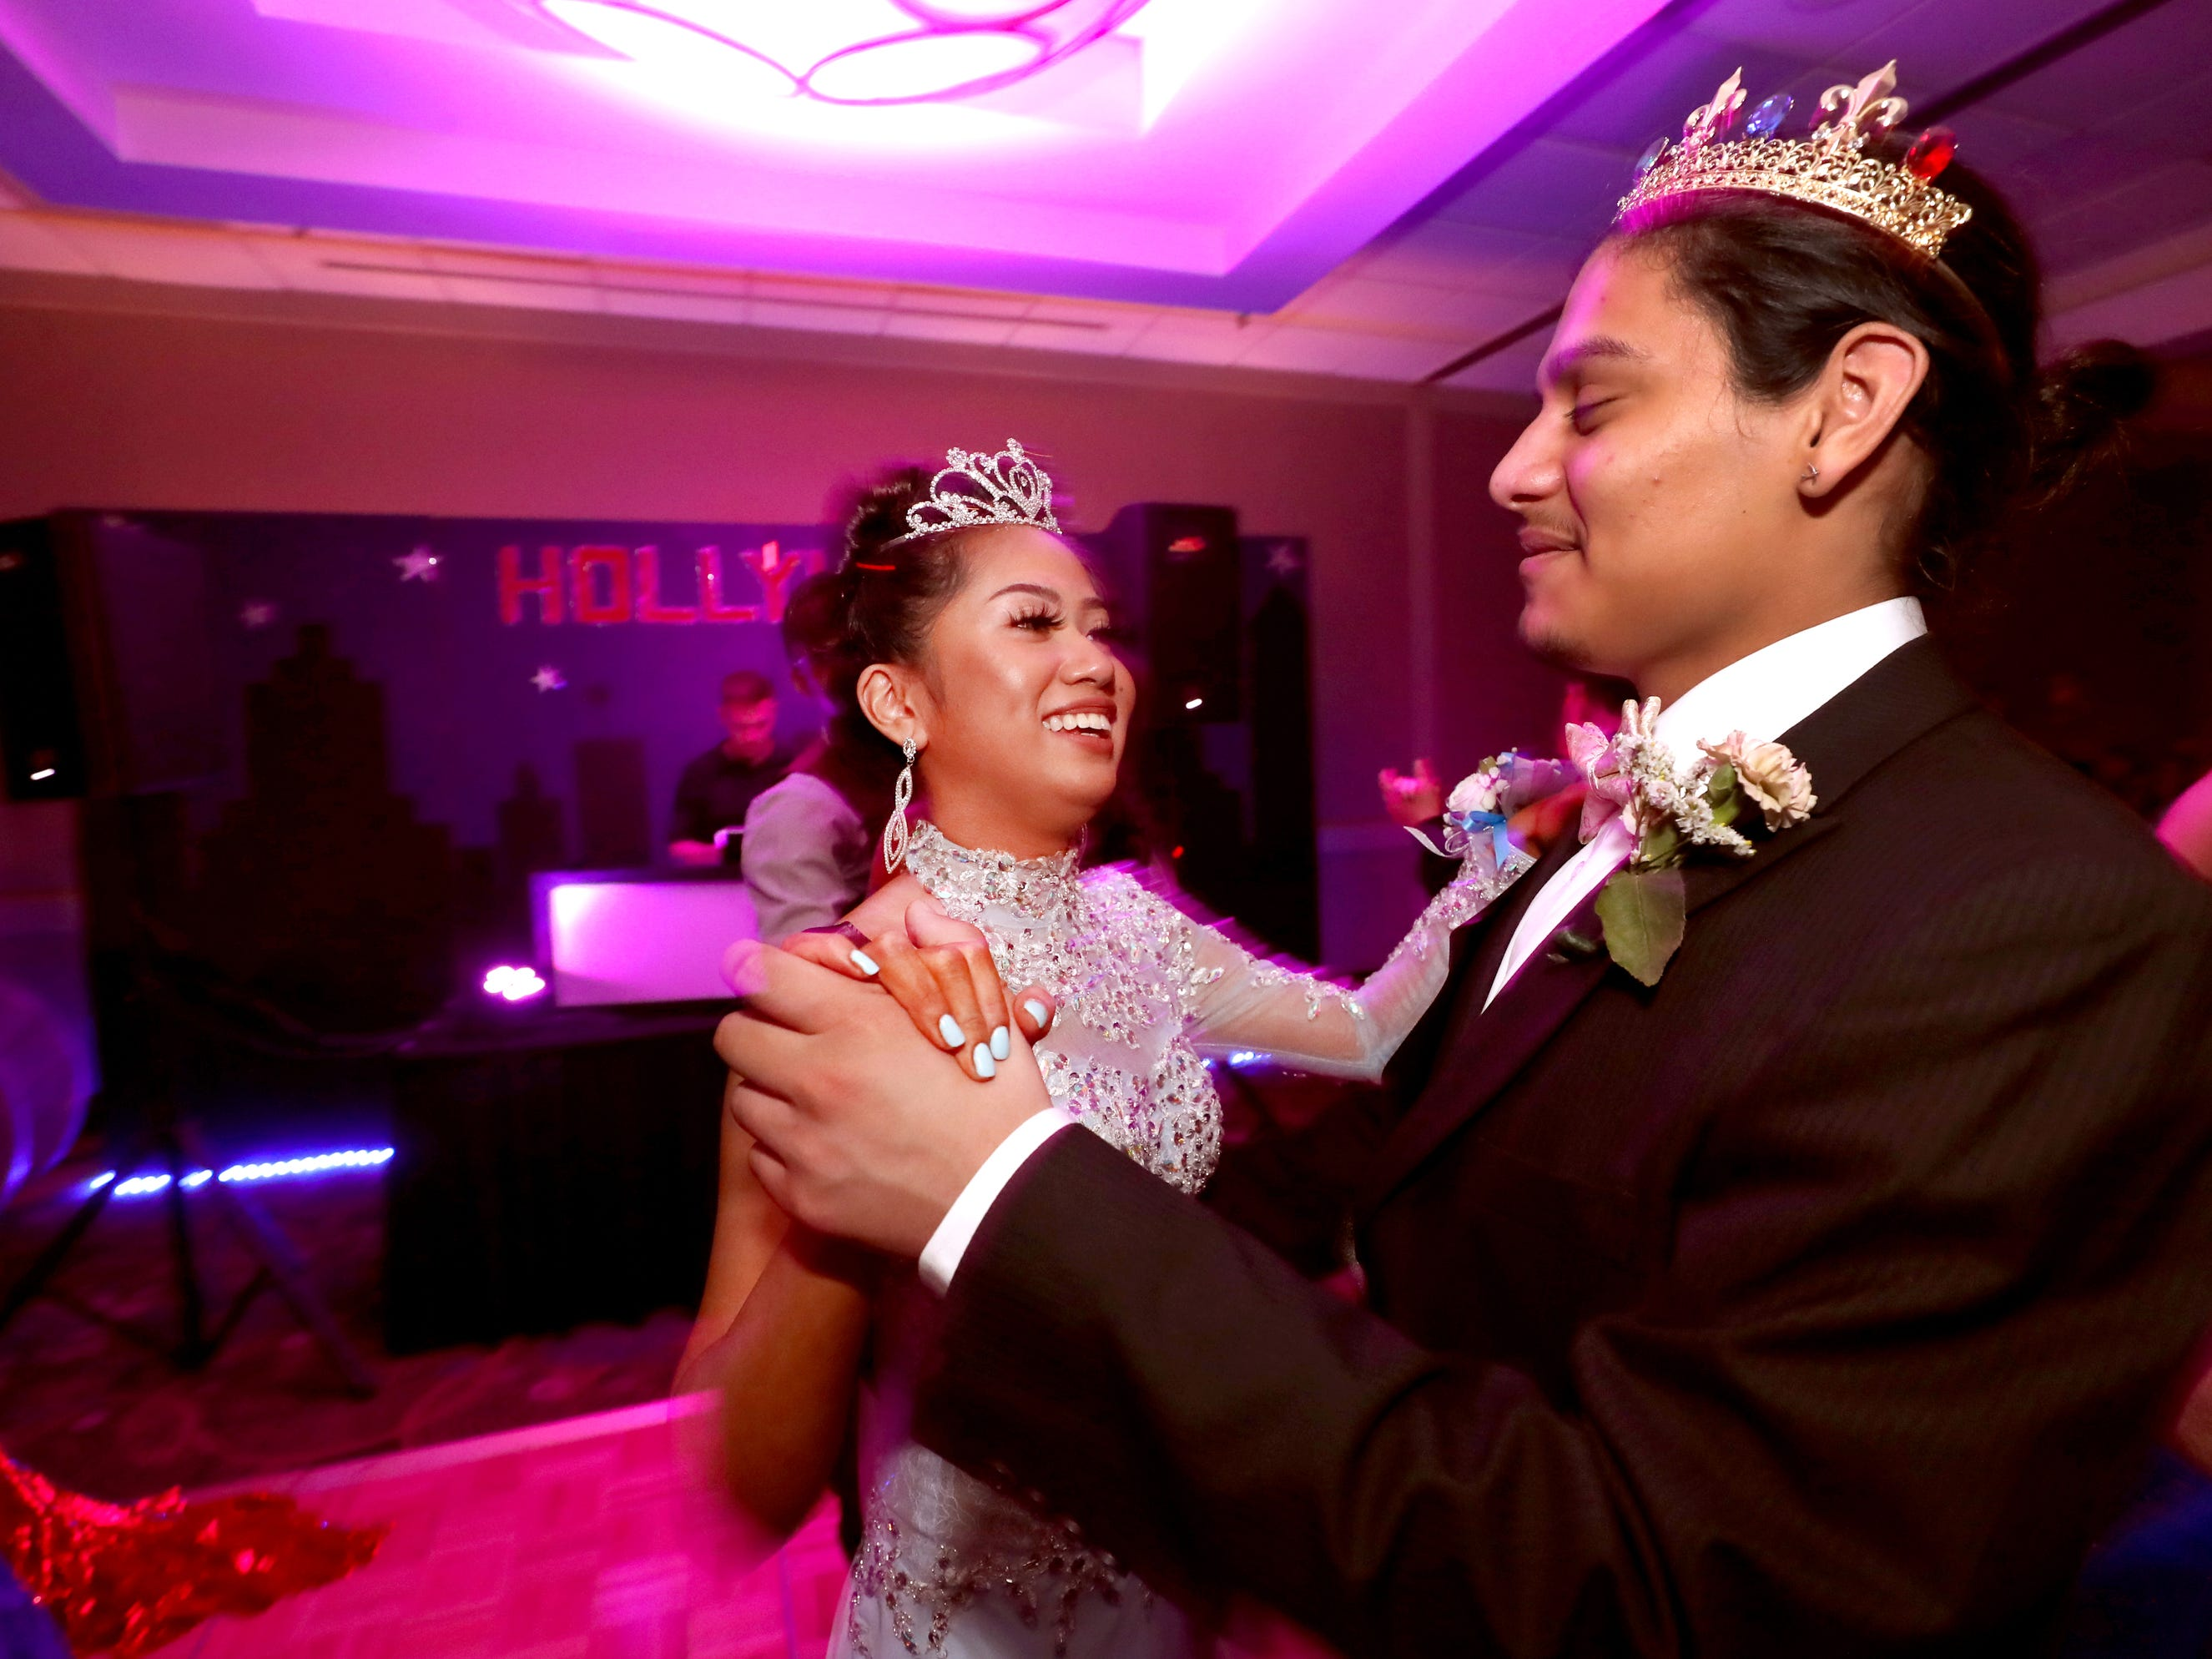 Prom Queen Anna Kounboribounsak and Prom King Diego Valencia during Holloway's prom at the DoubleTree on Thursday April 18, 2019.